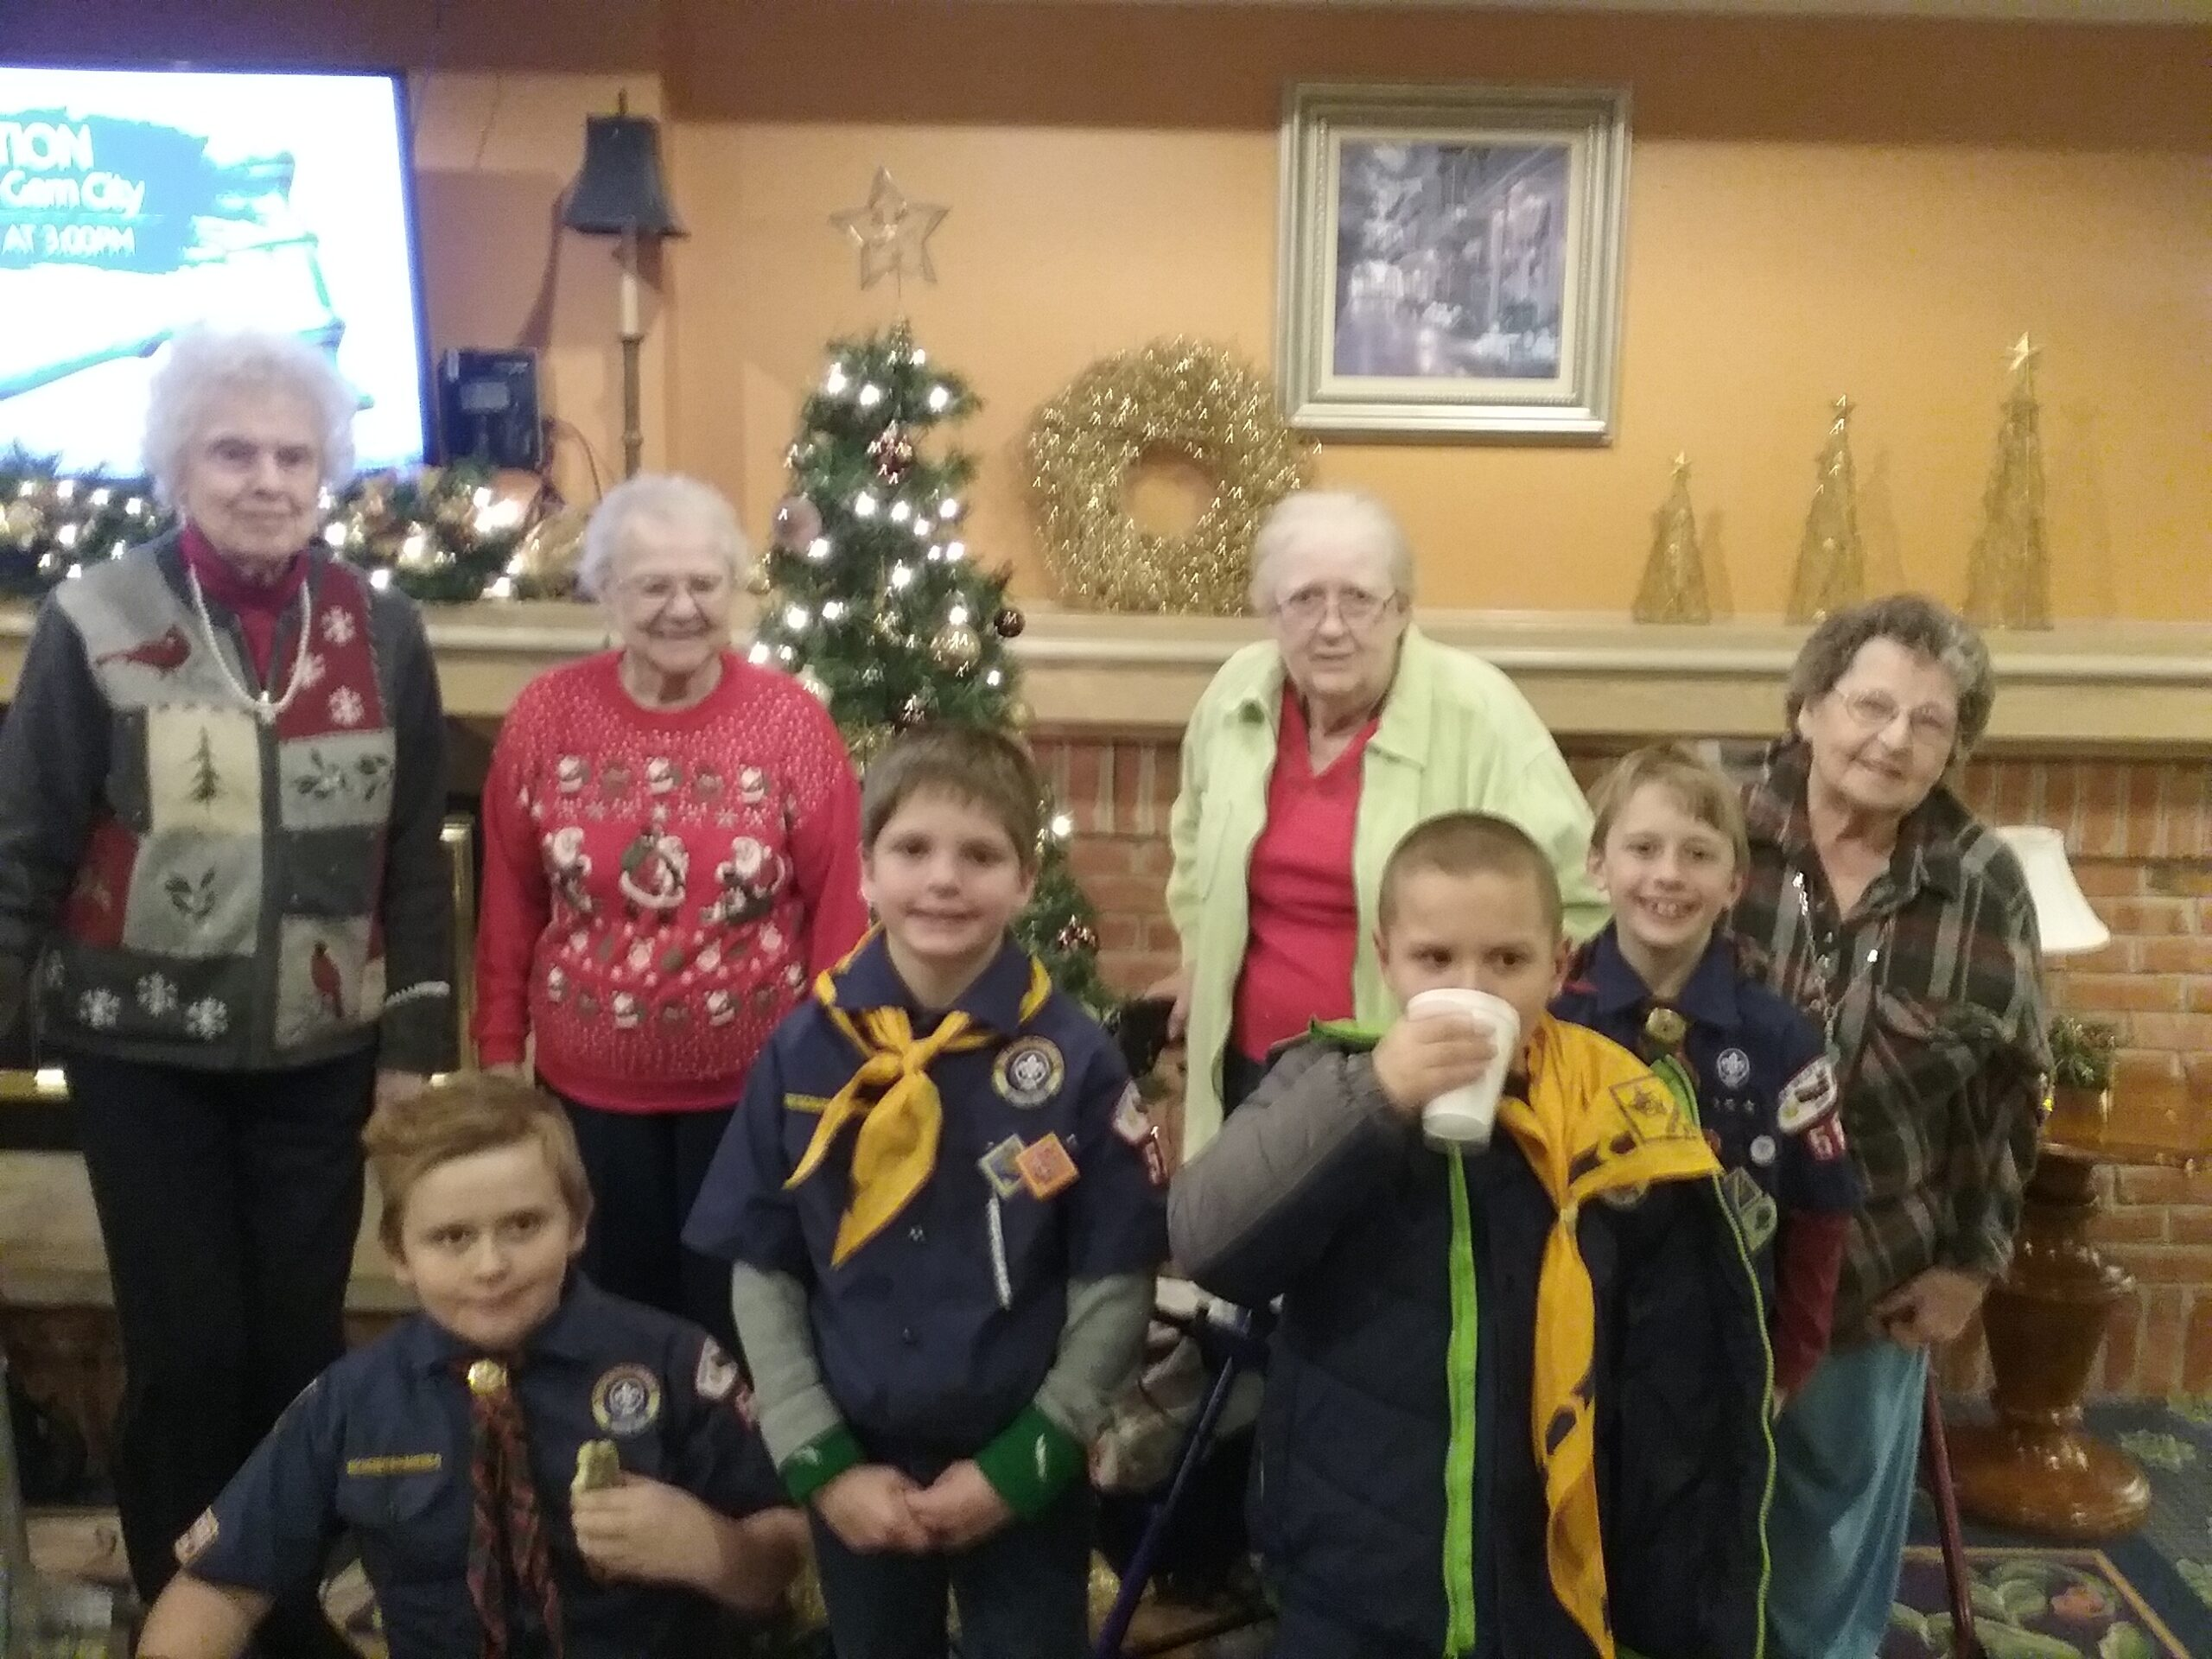 Cub Scouts and Seniors Enjoy Hot Choc after the Performance